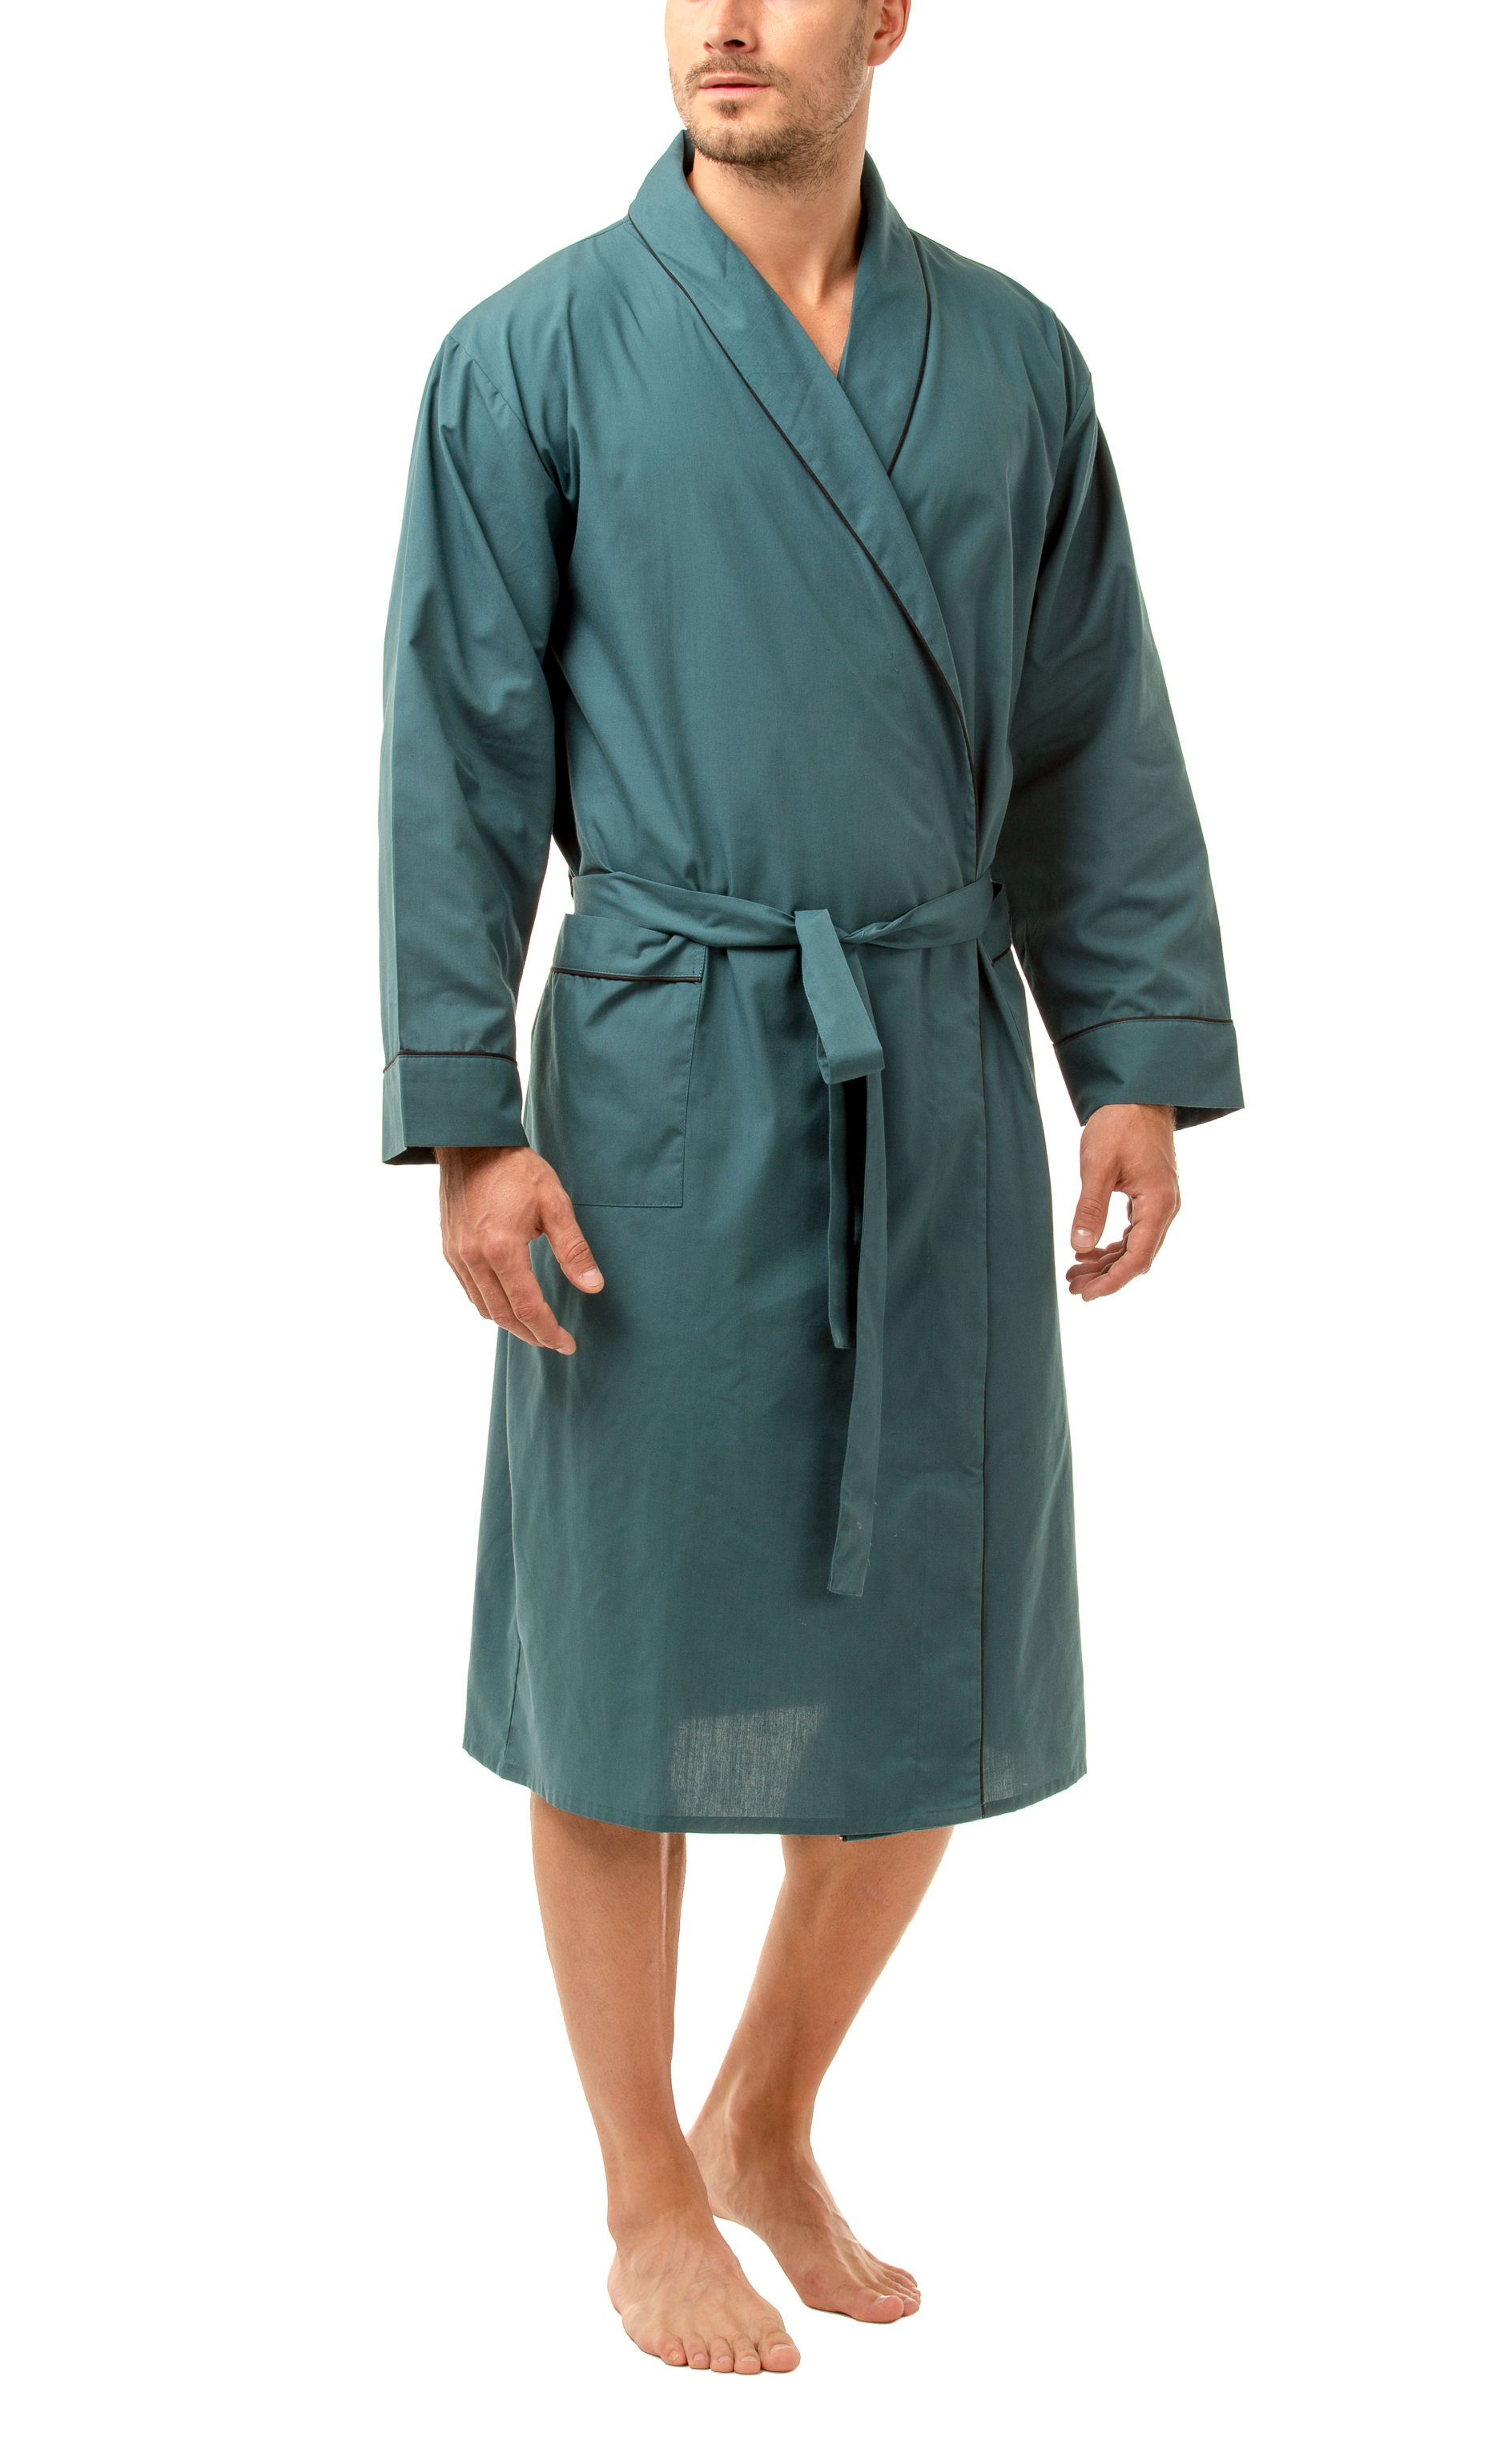 Haigman Men\'s Easy Care Dressing Gown Bath Robe with Cotton ...